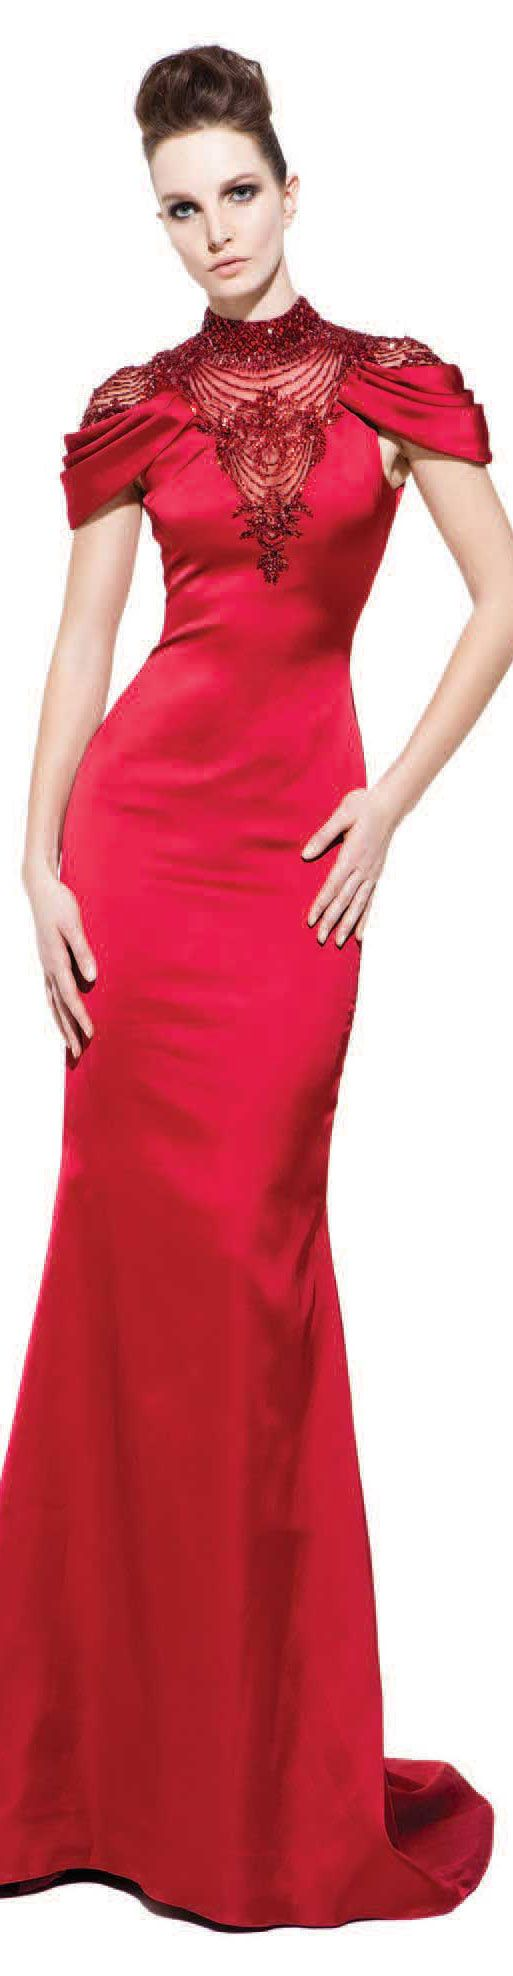 PAVONI Collection - Fall/Winter 2012 #long #red #dress